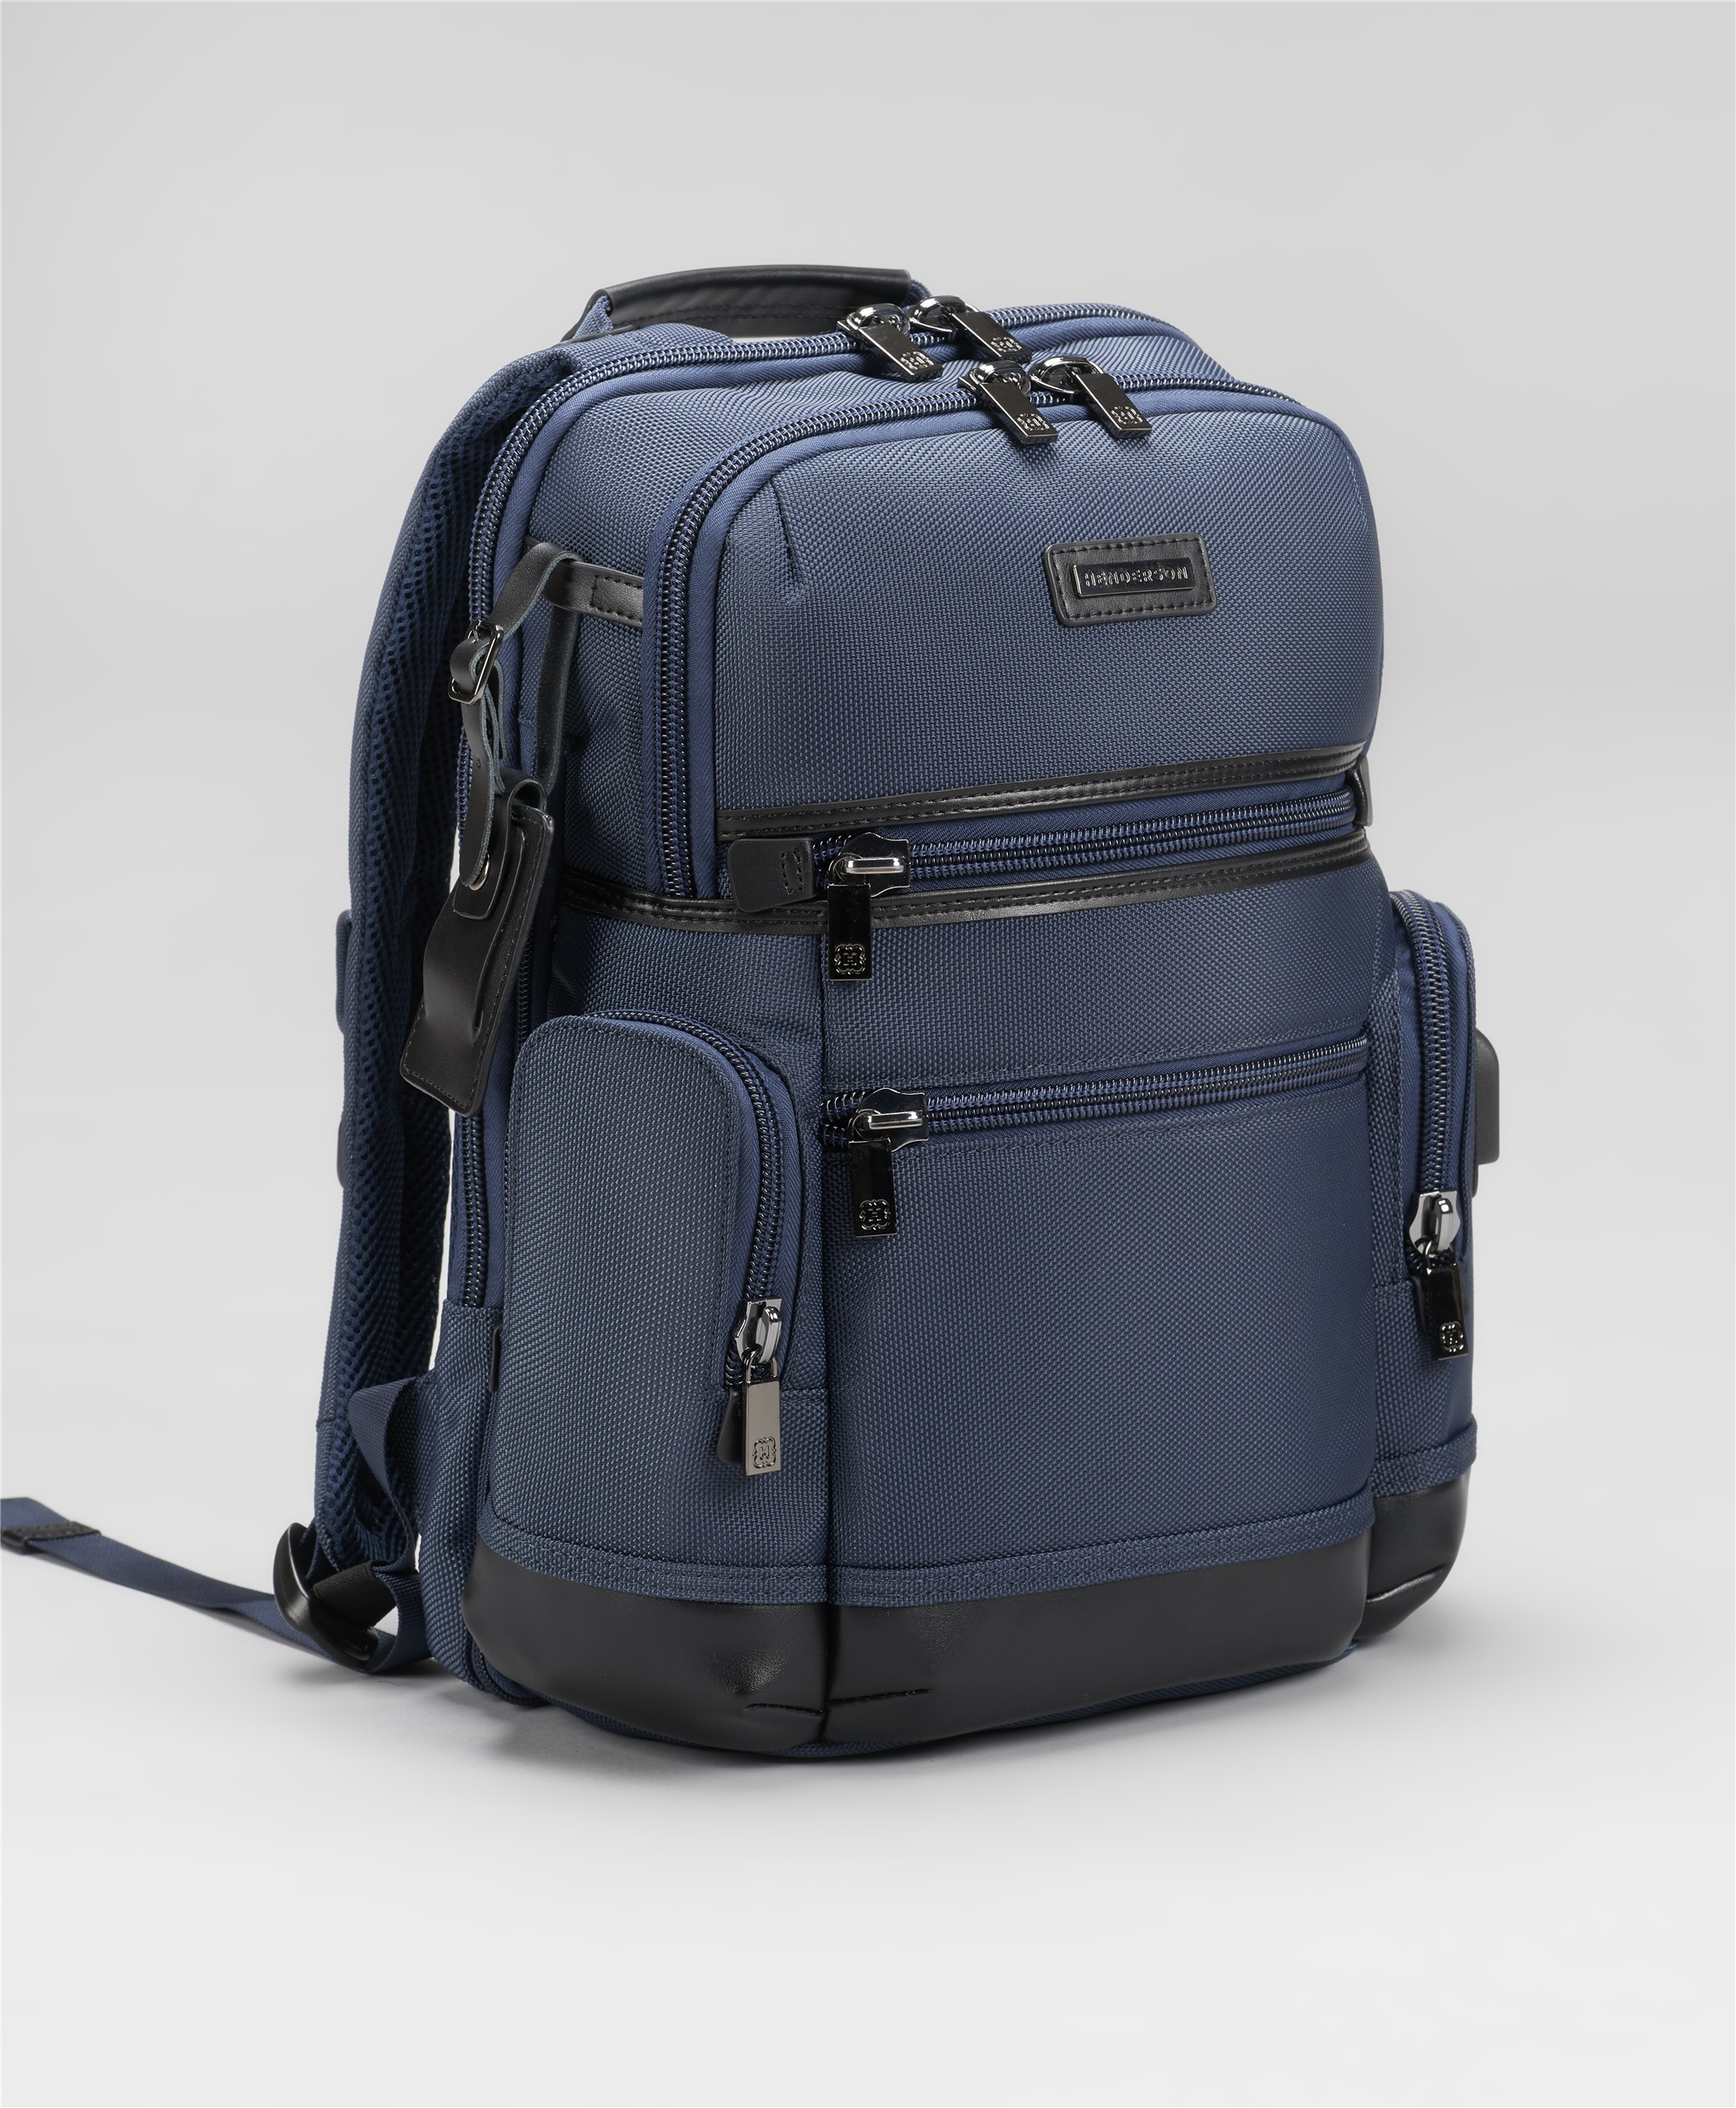 HENDERSON BG-0310 NAVY bg рюкзак just greyg sbj 4682